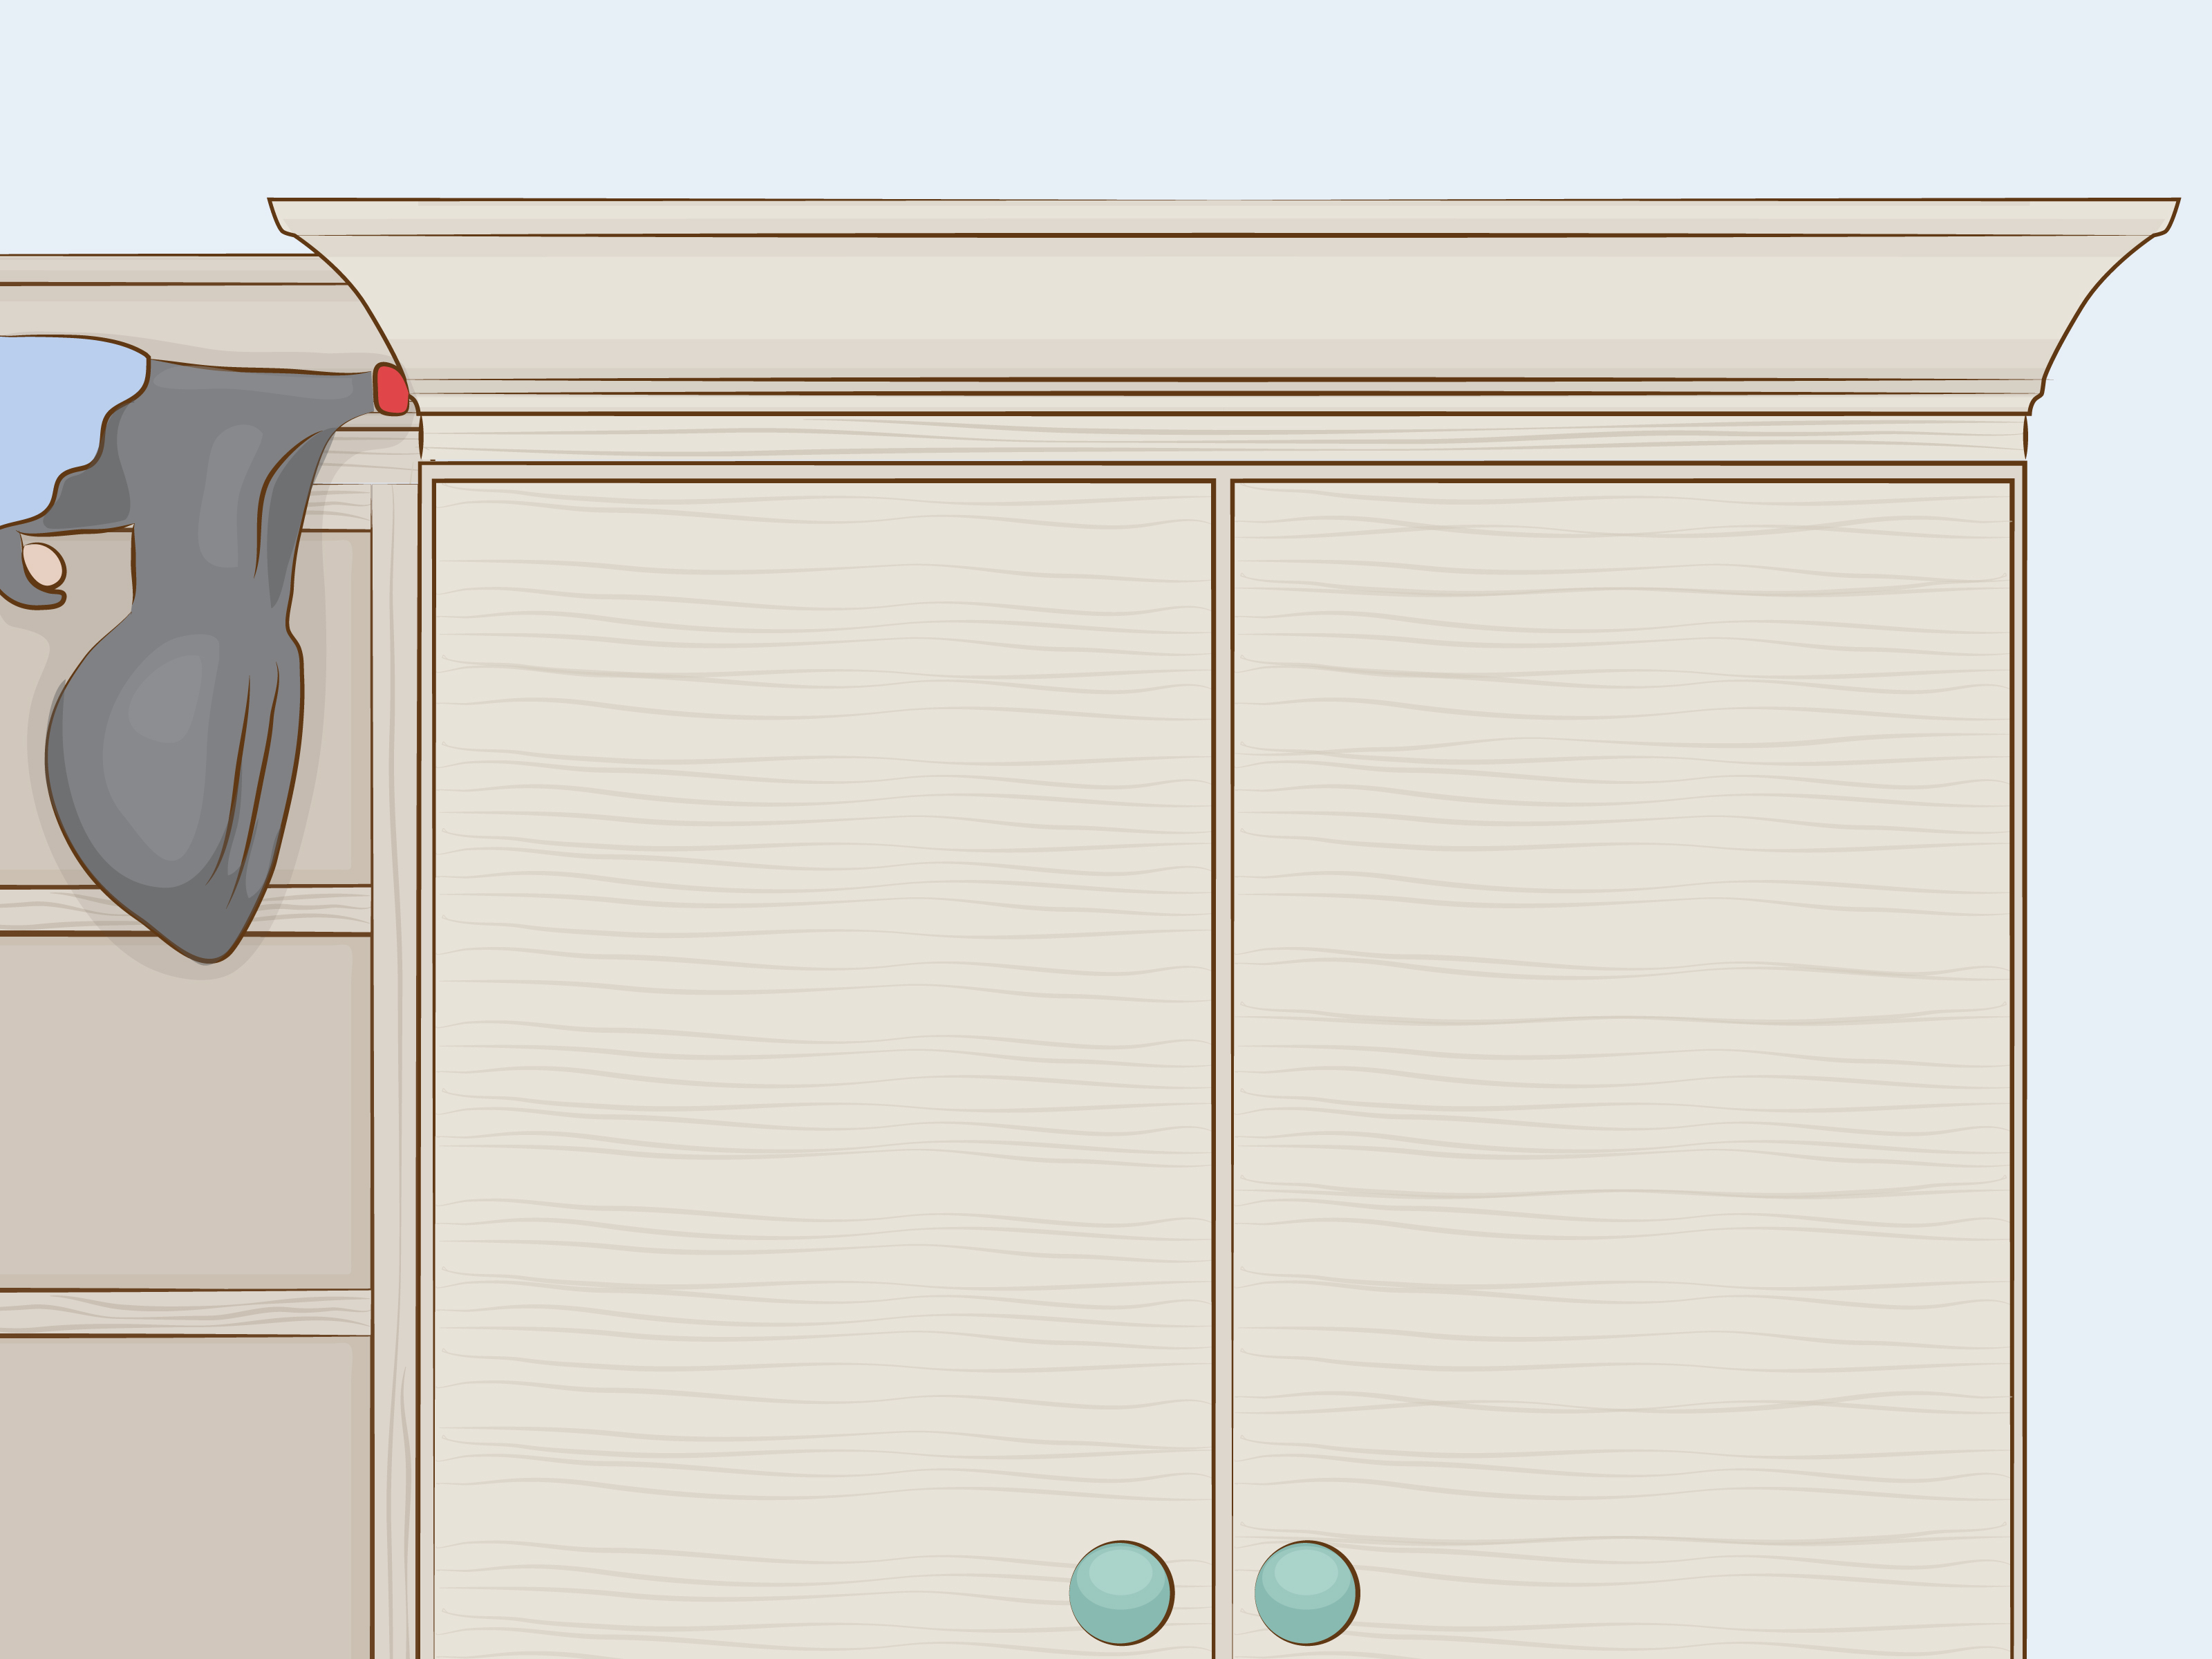 Most Current How To Cut Crown Molding For Cabinets: 12 Steps (With Pictures) Regarding Walnut Finish Crown Moulding Sideboards (View 7 of 20)